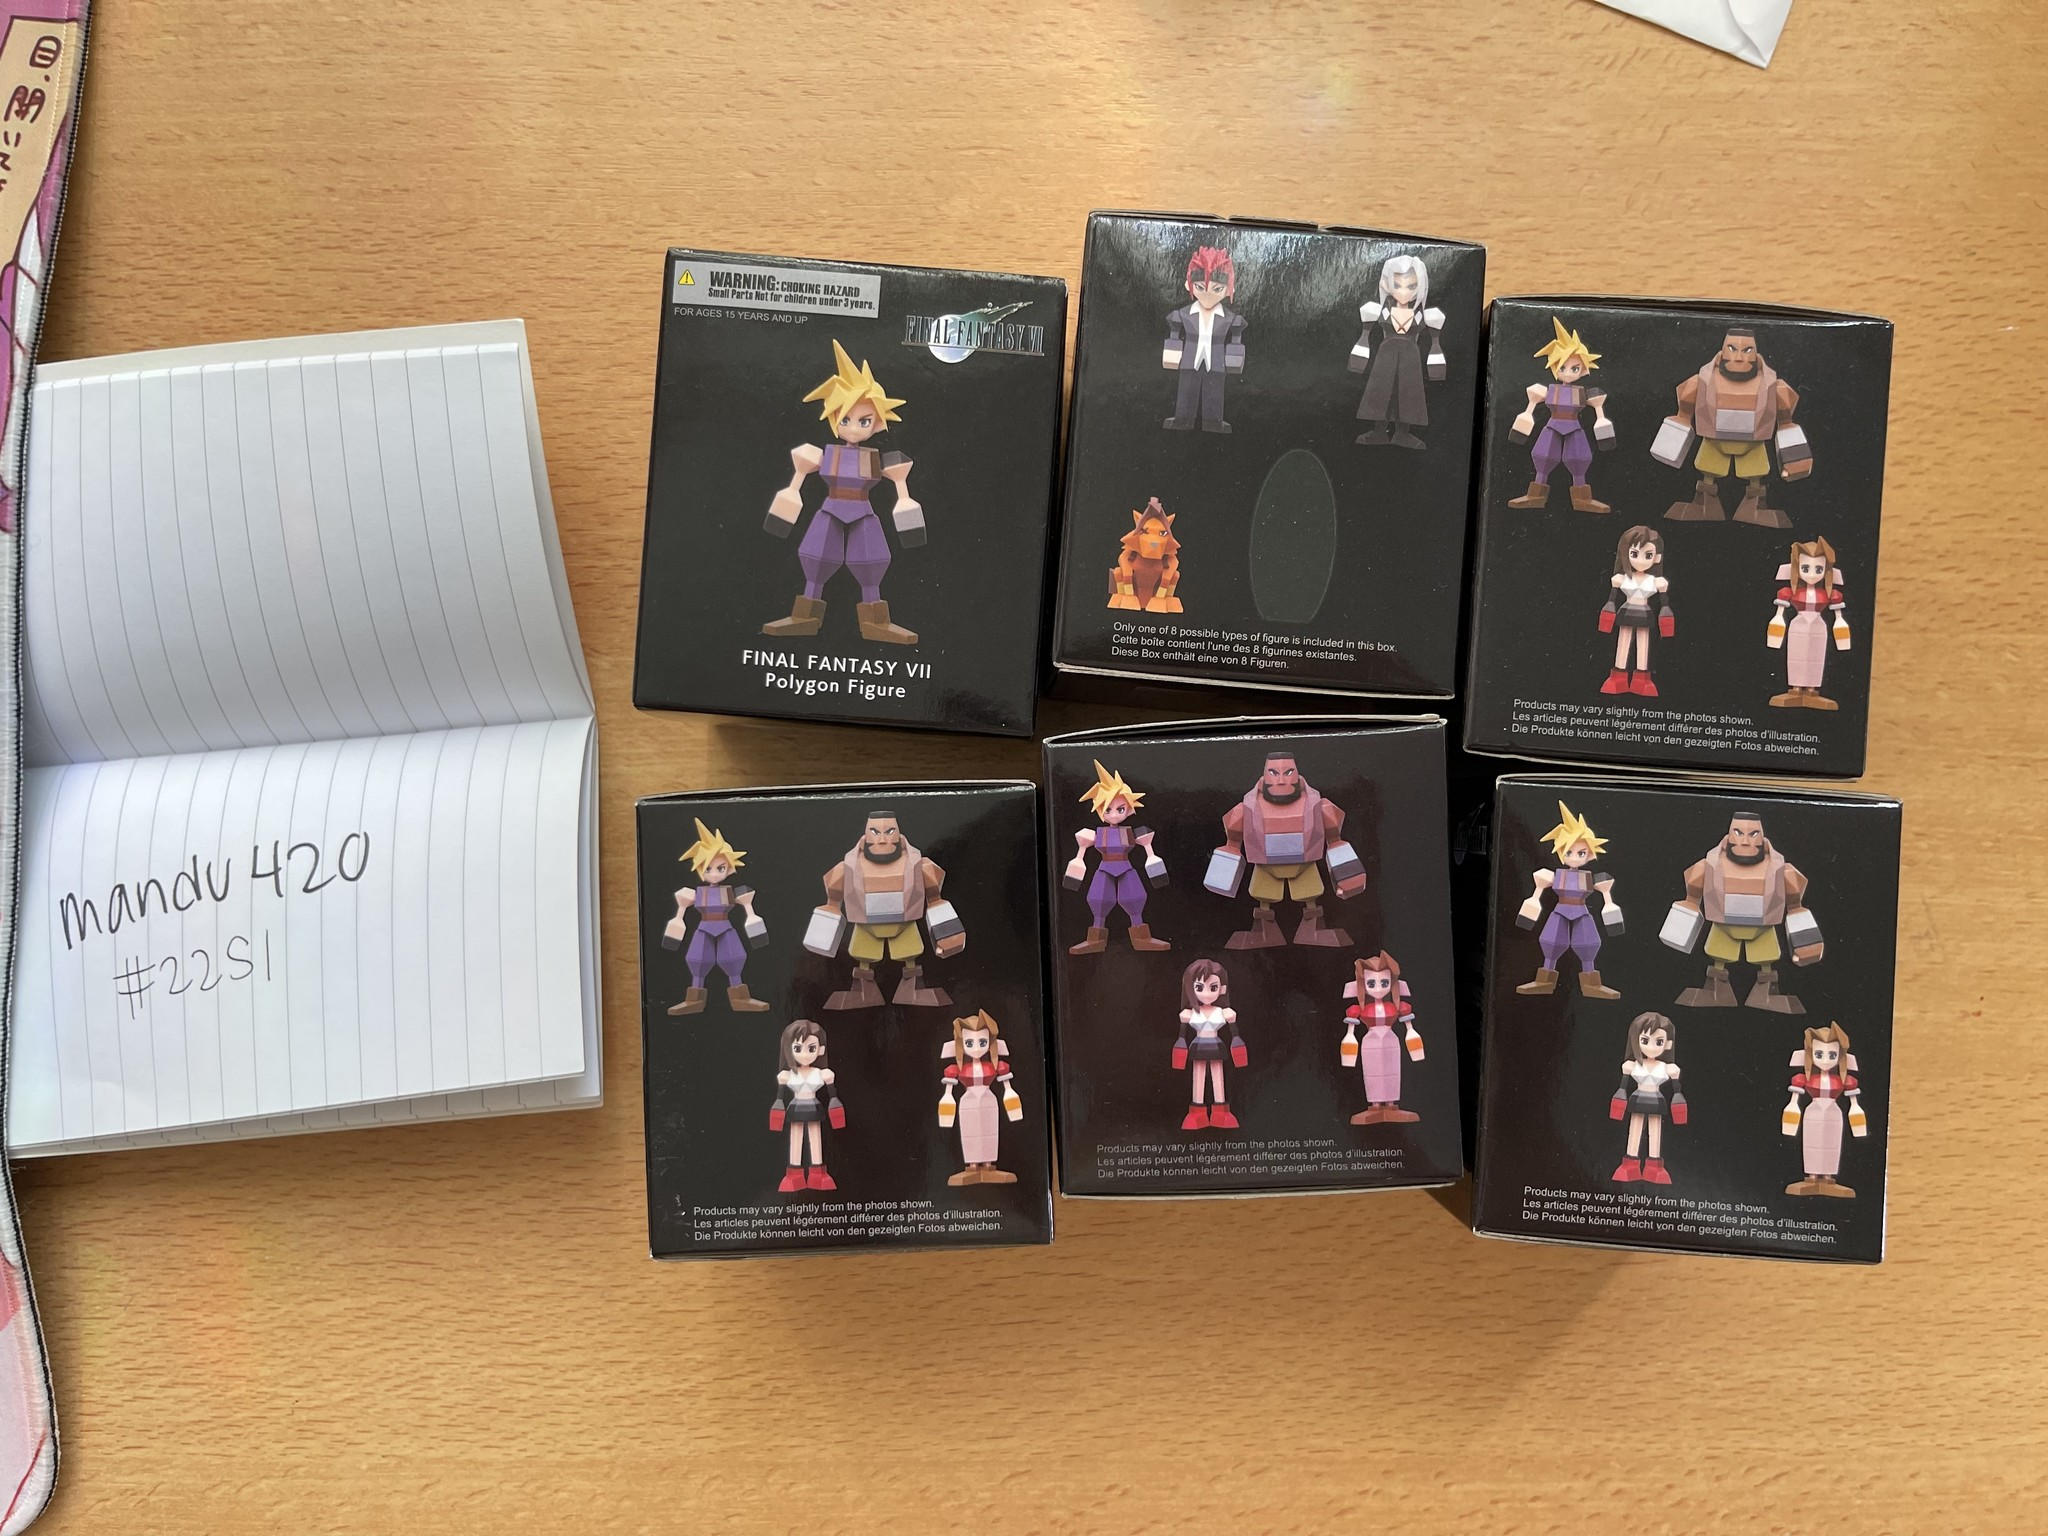 https://static.myfigurecollection.net/upload/pictures/2021/08/24/2828597.jpeg